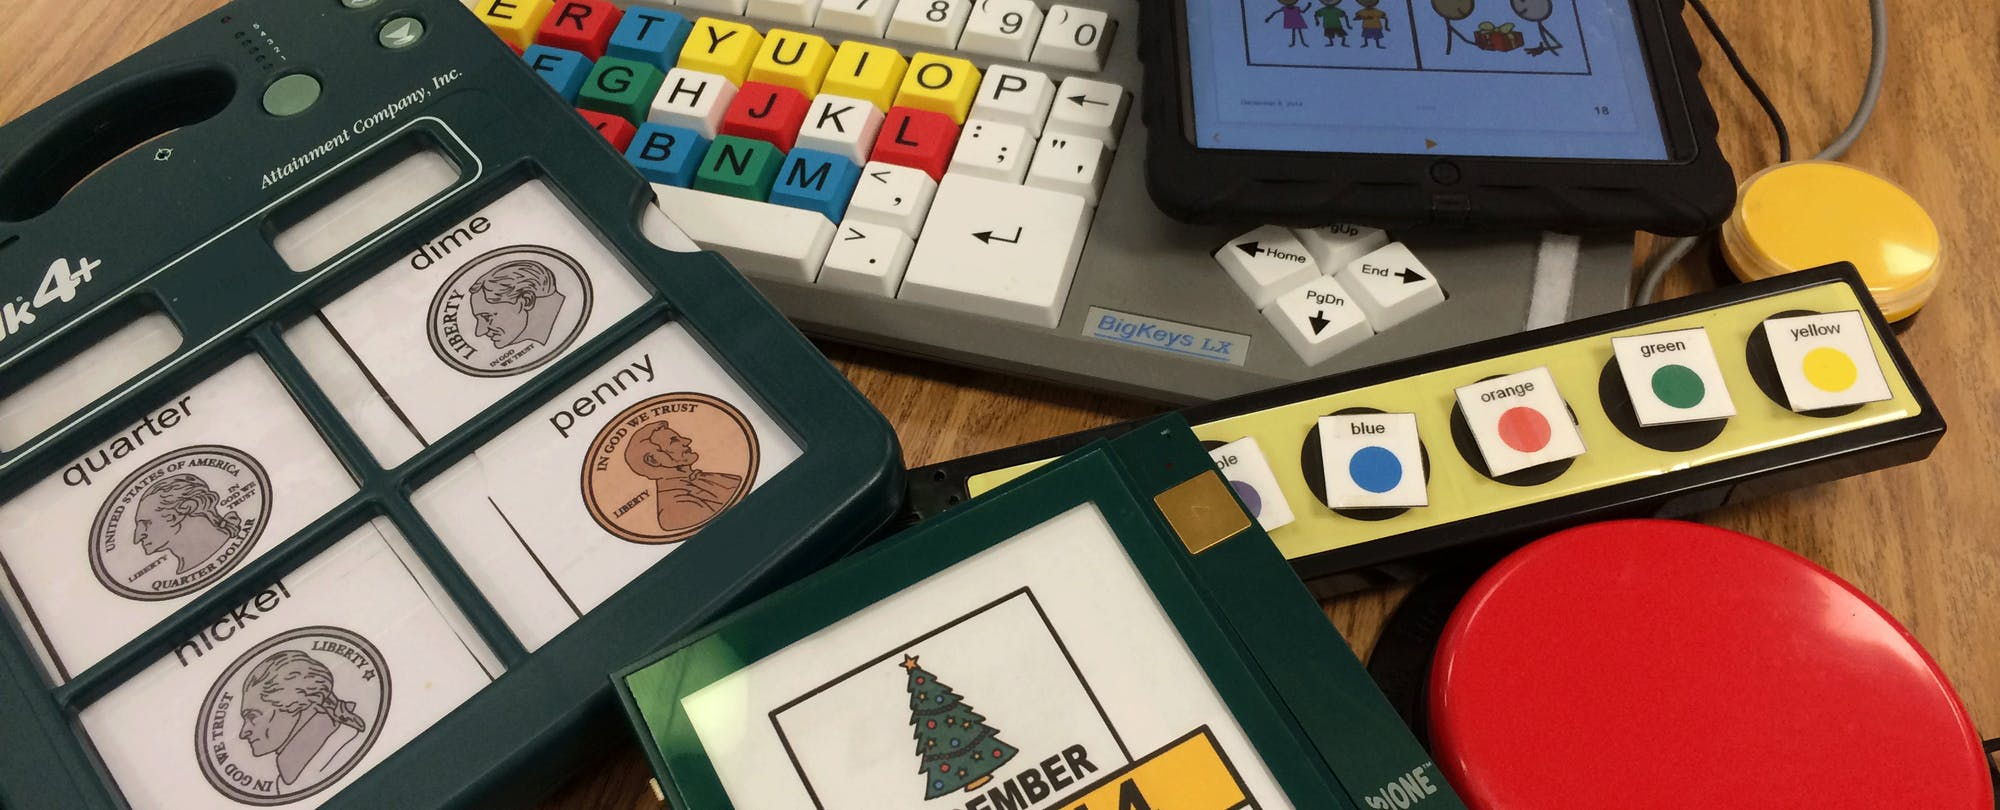 ​Inside the Special Education Classroom: How Tech Can Help Students With Special Needs